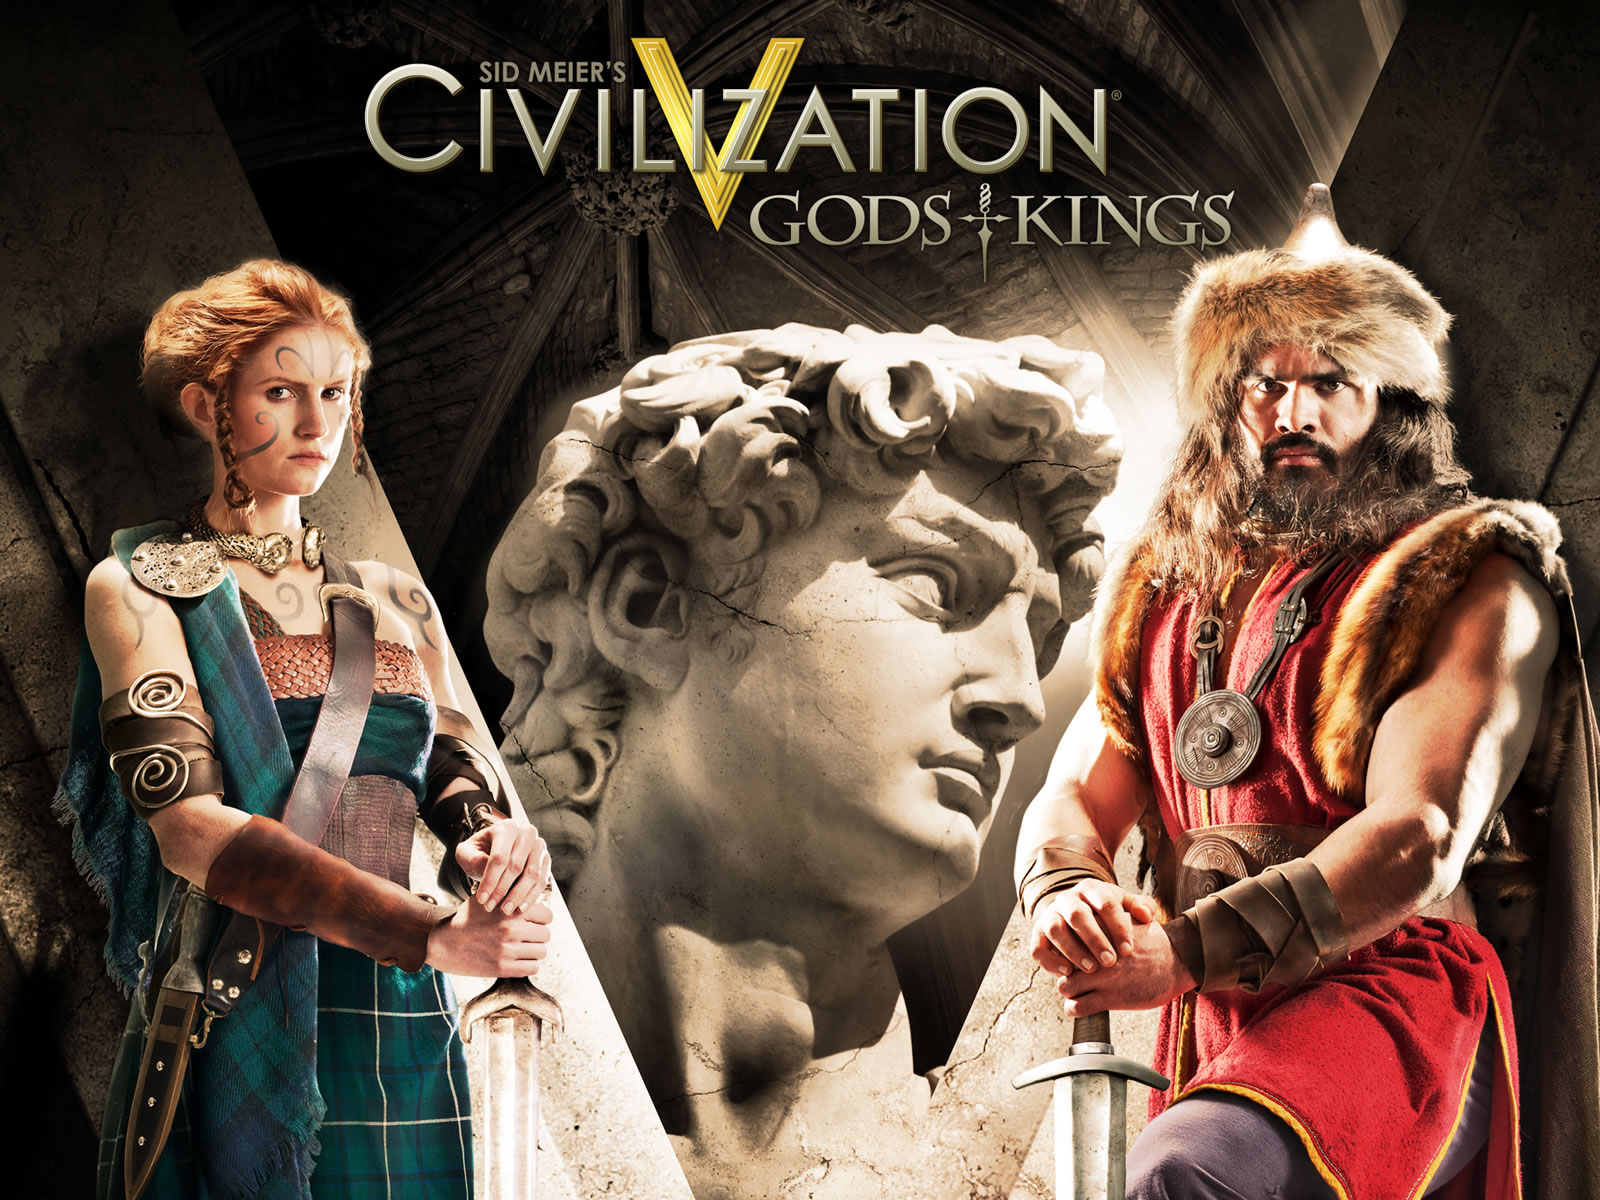 http://downloads.2kgames.com/civ5/godsandkings/us/downloads/wallpaper/wallpaper_2/4x3/1600x1200_2_flat.jpg